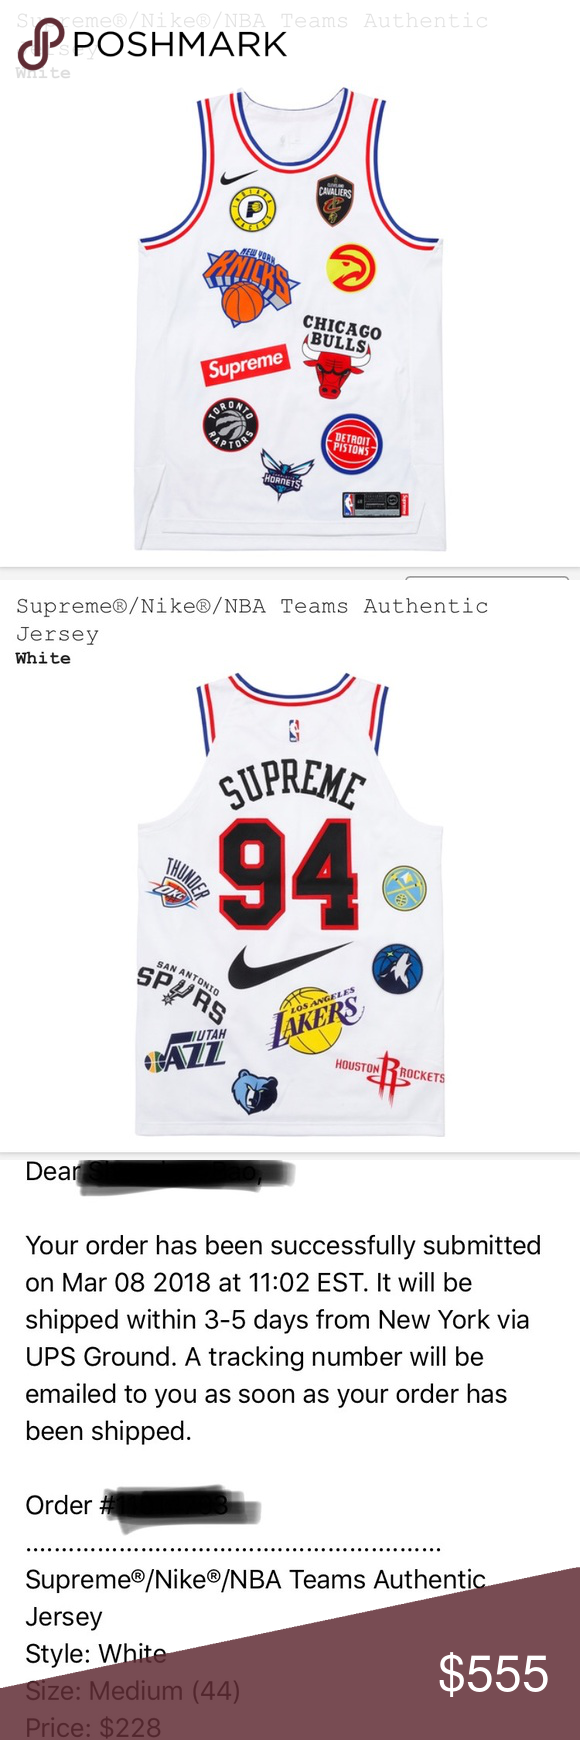 Supreme x Nike NBA Teams Authentic Jersey White Brand new from Supreme  Website Deadstock 34a152b69